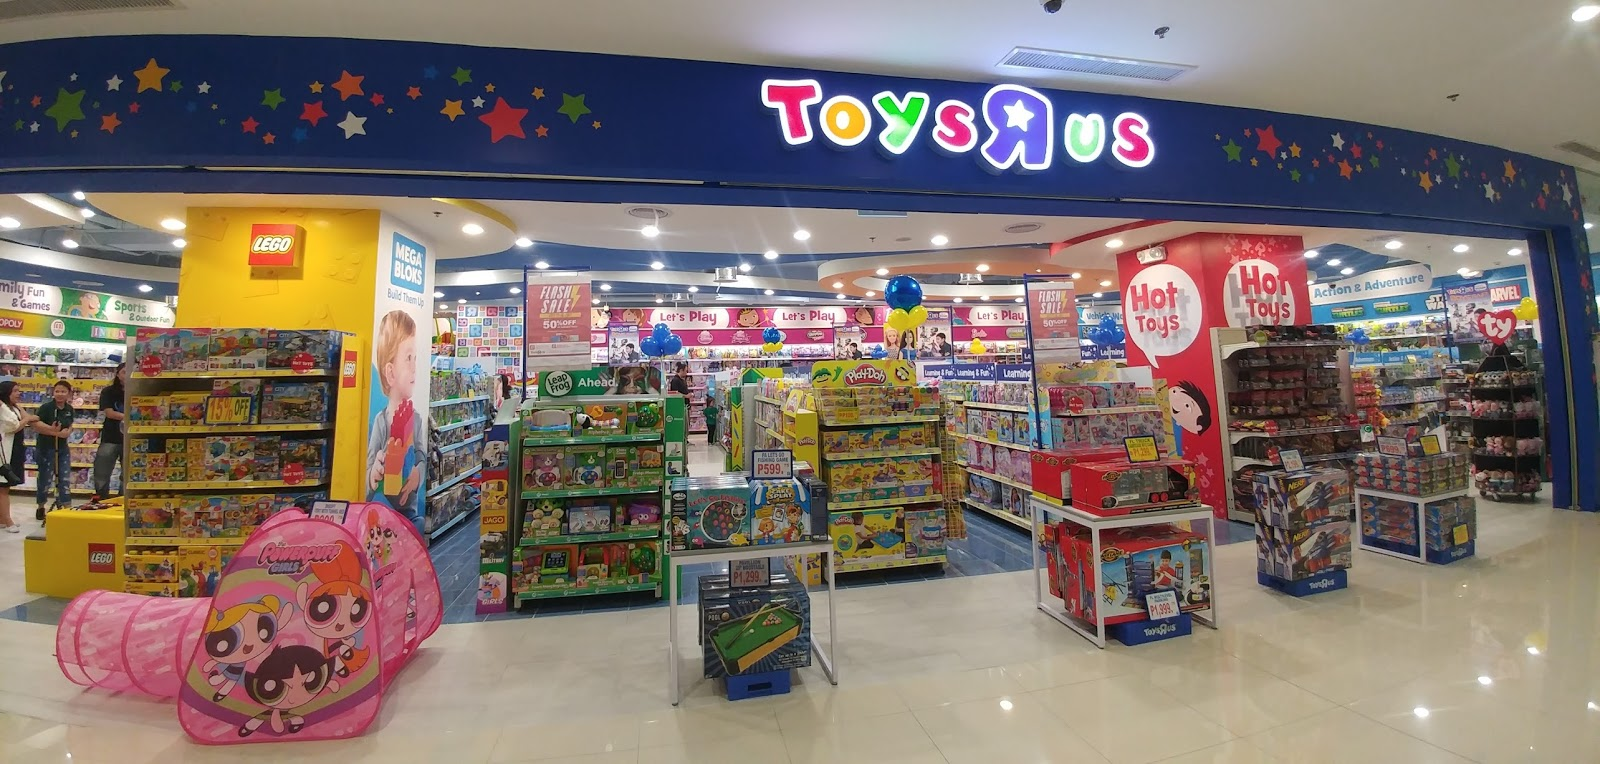 Toys R Us Expands Their 33rd Store In The South